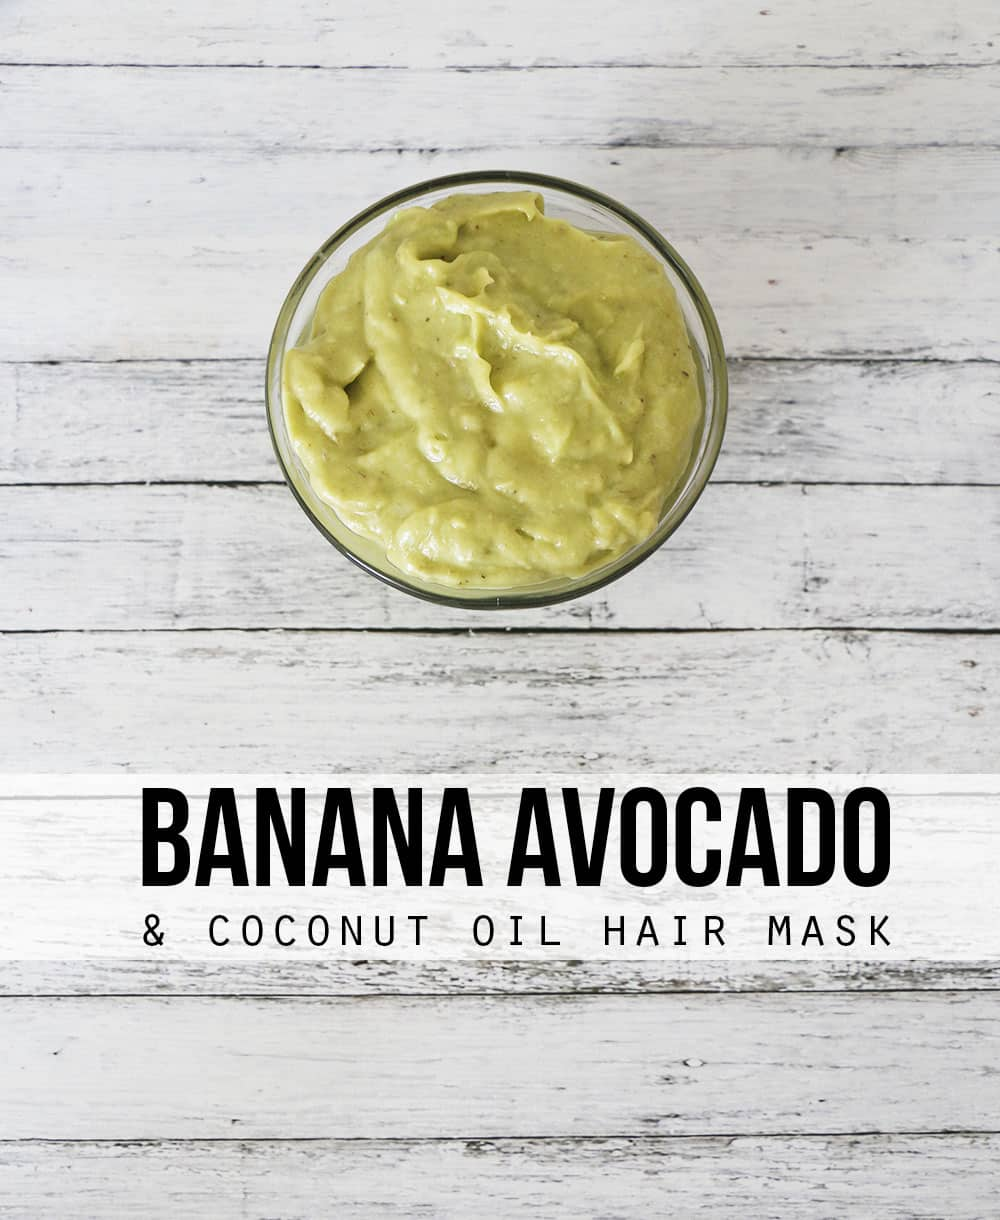 Looking for a homemade hair mask? This coconut oil avocado and banana hair mask can't be beat! With just three ingredients, your hair will look less damaged and feel healthier in no time.